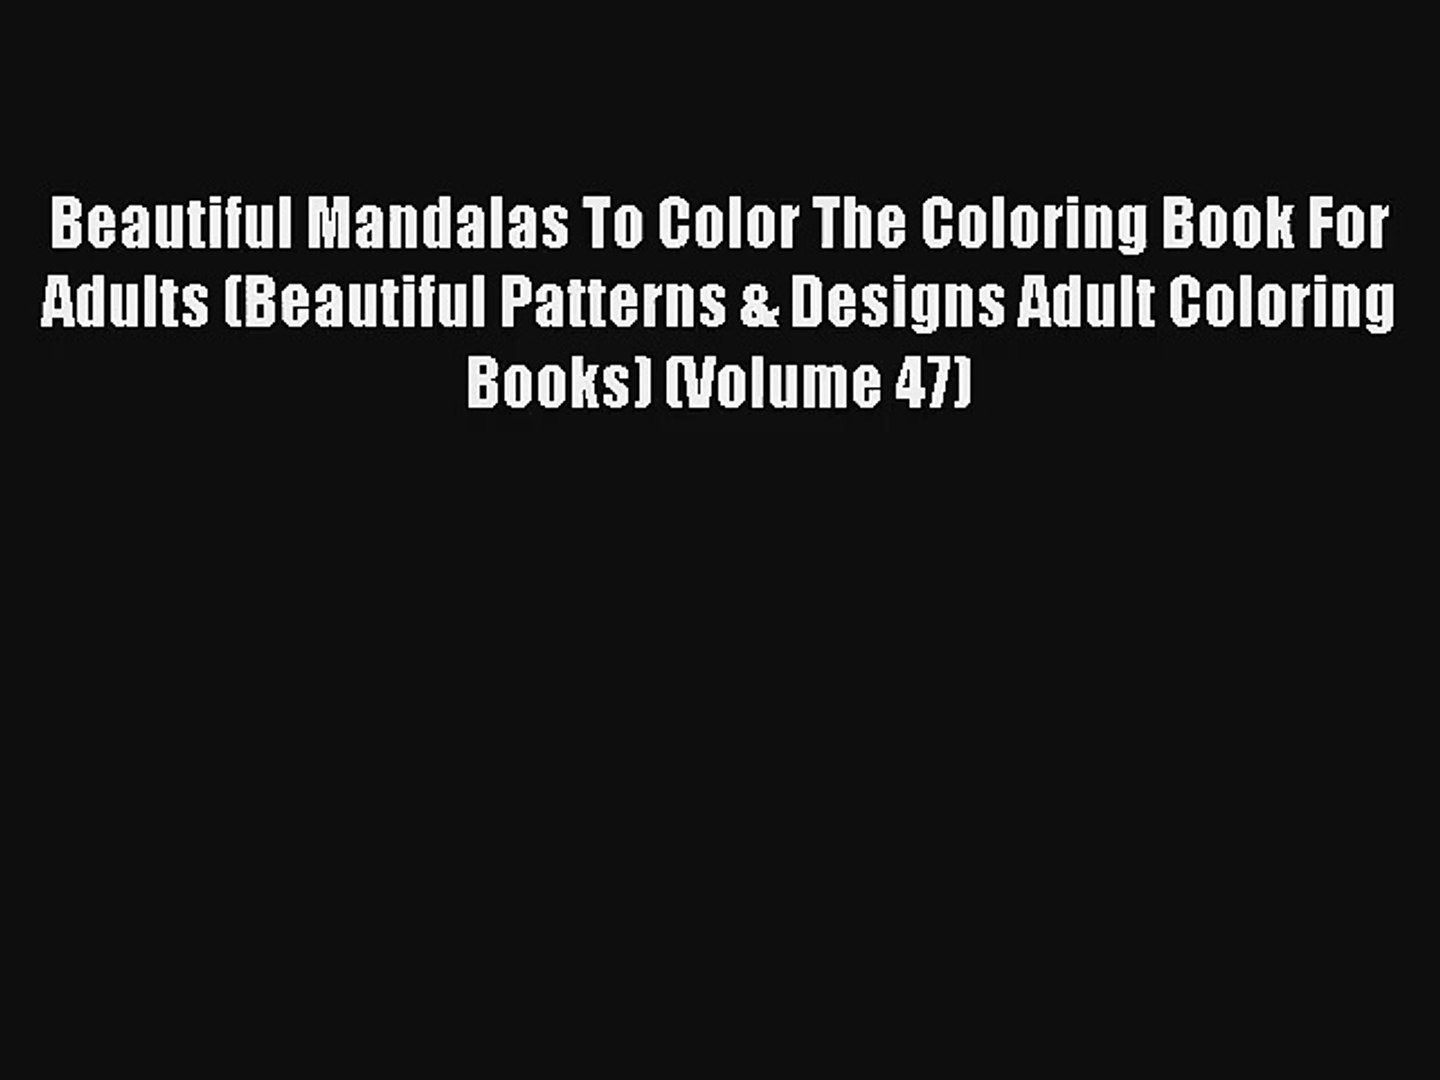 Beautiful Mandalas To Color The Coloring Book For Adults (Beautiful Patterns & Designs Adult